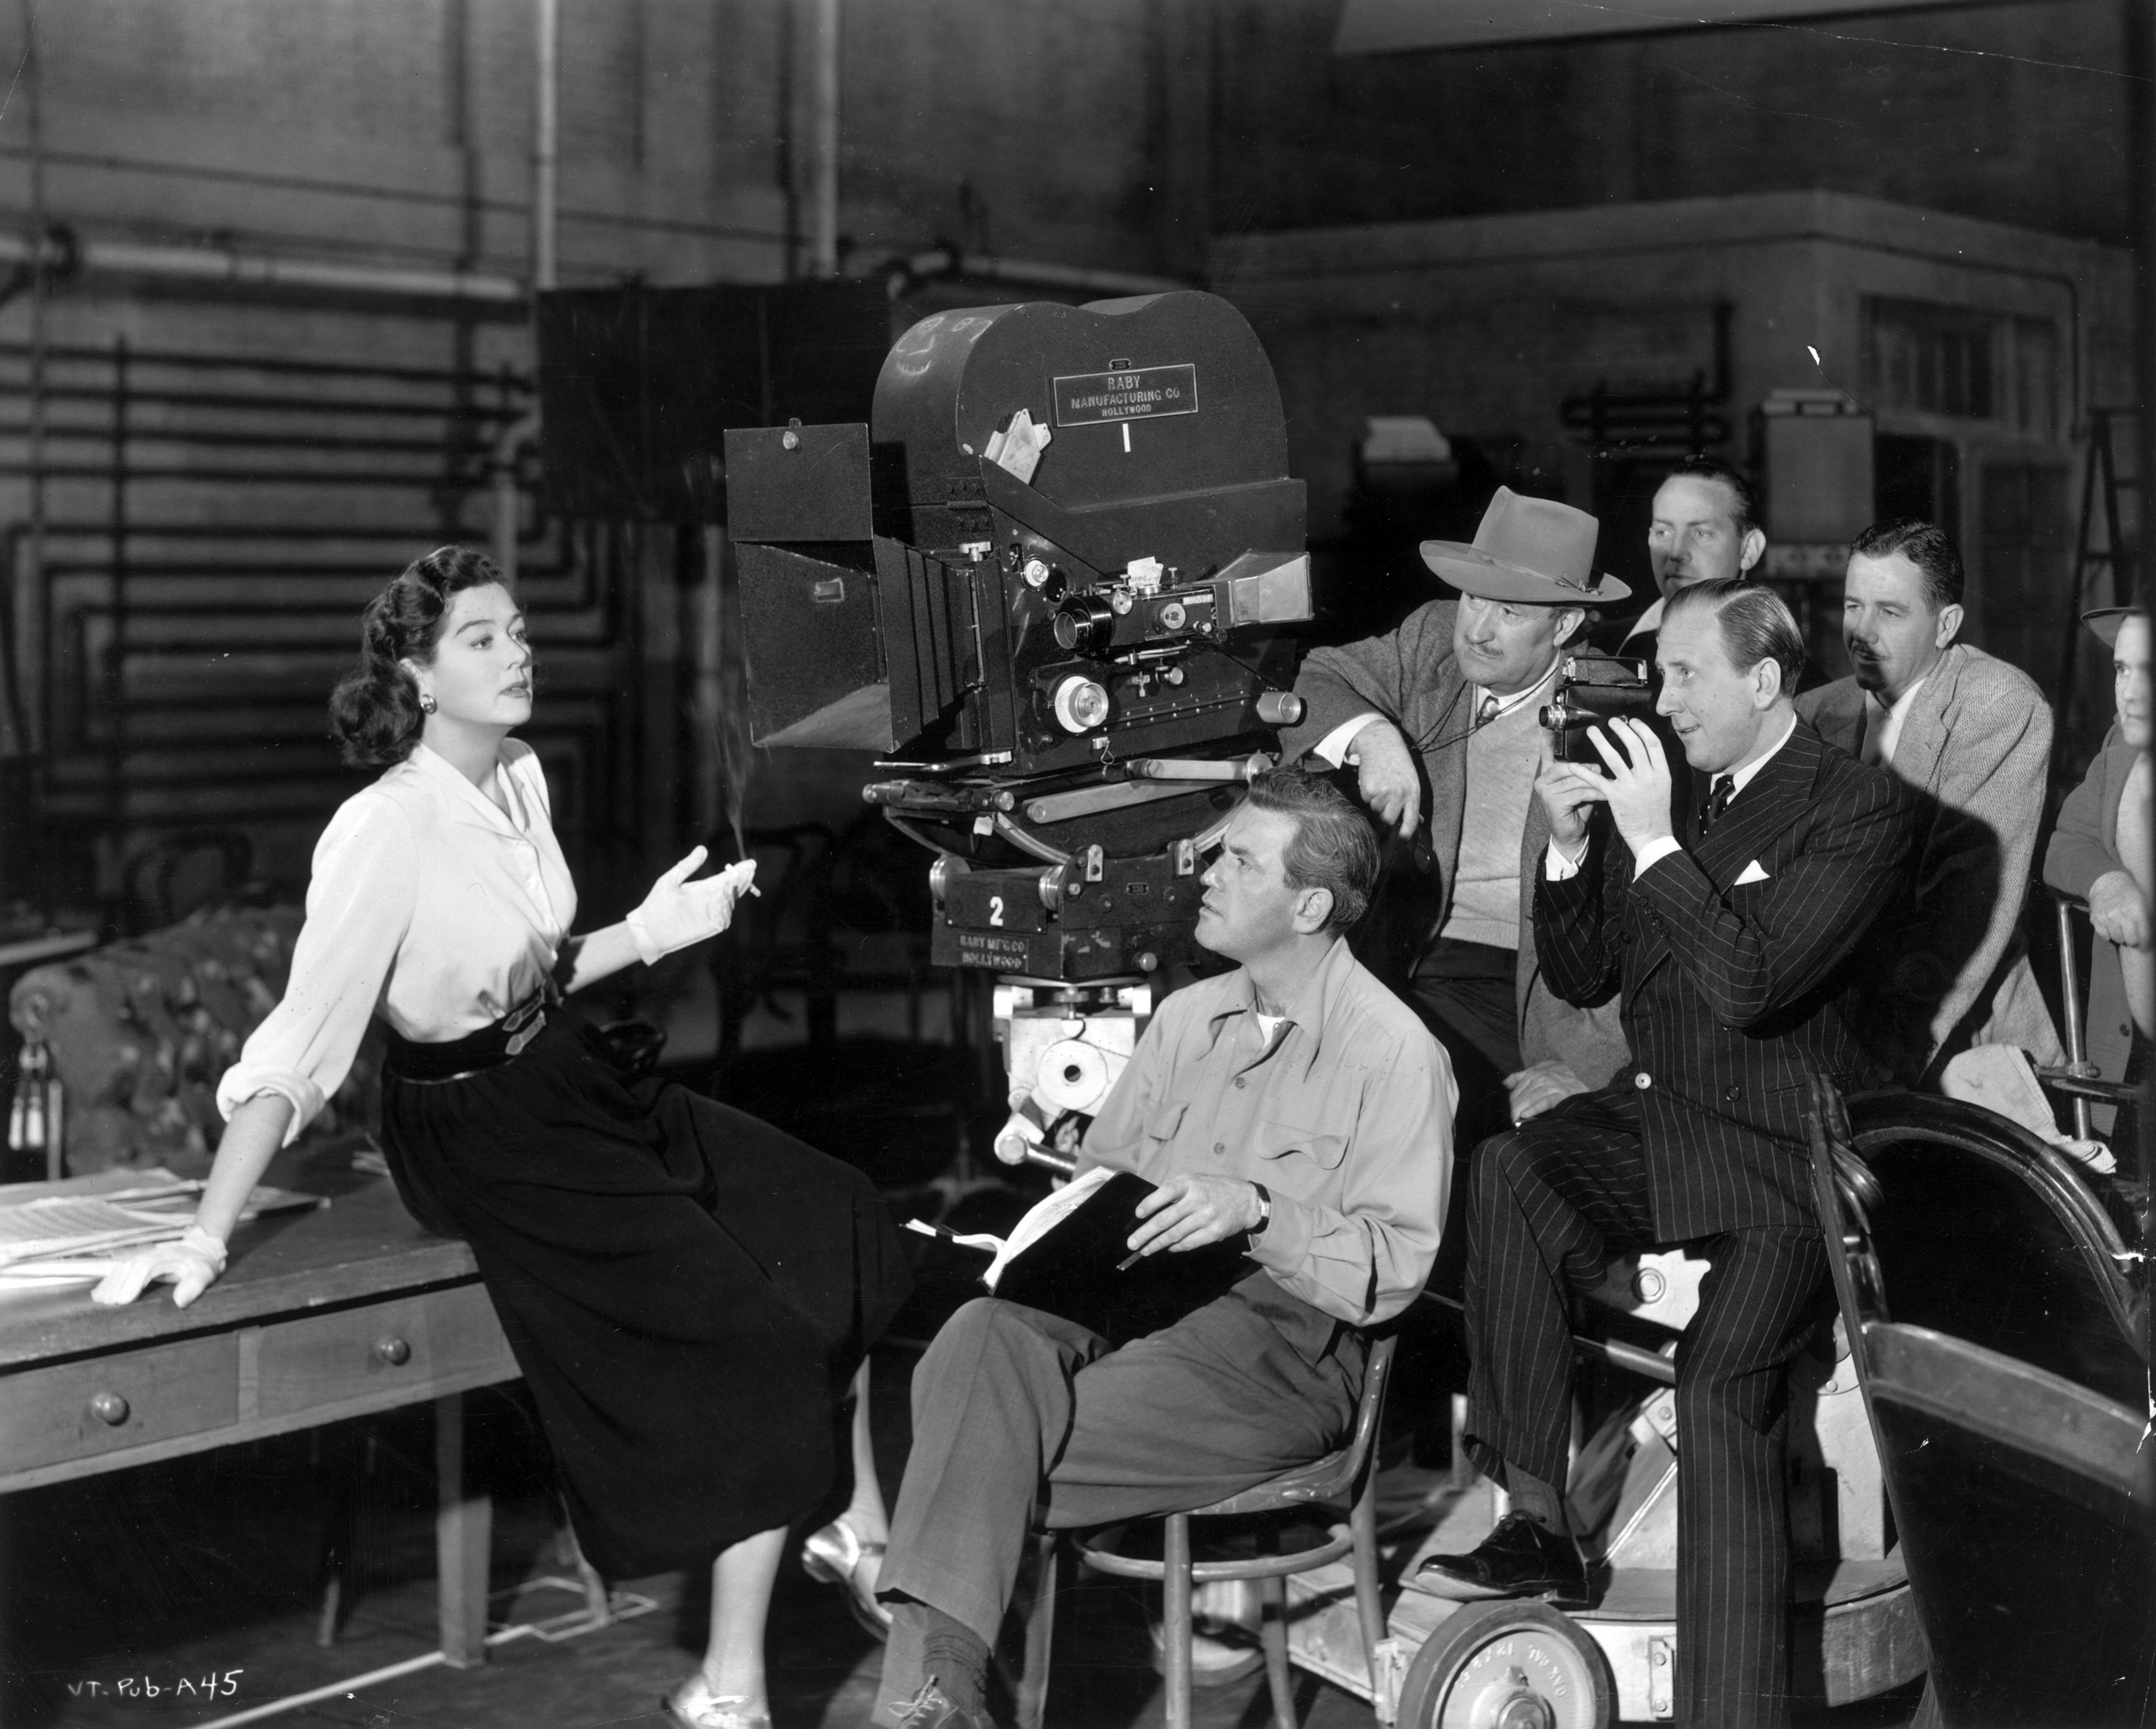 Rosalind Russell sits with her legs crossed on the edge of a wooden desk, holding a cigarette, as director John Gage and his crew film a scene on the set of 'The Velvet Touch'. 1948.